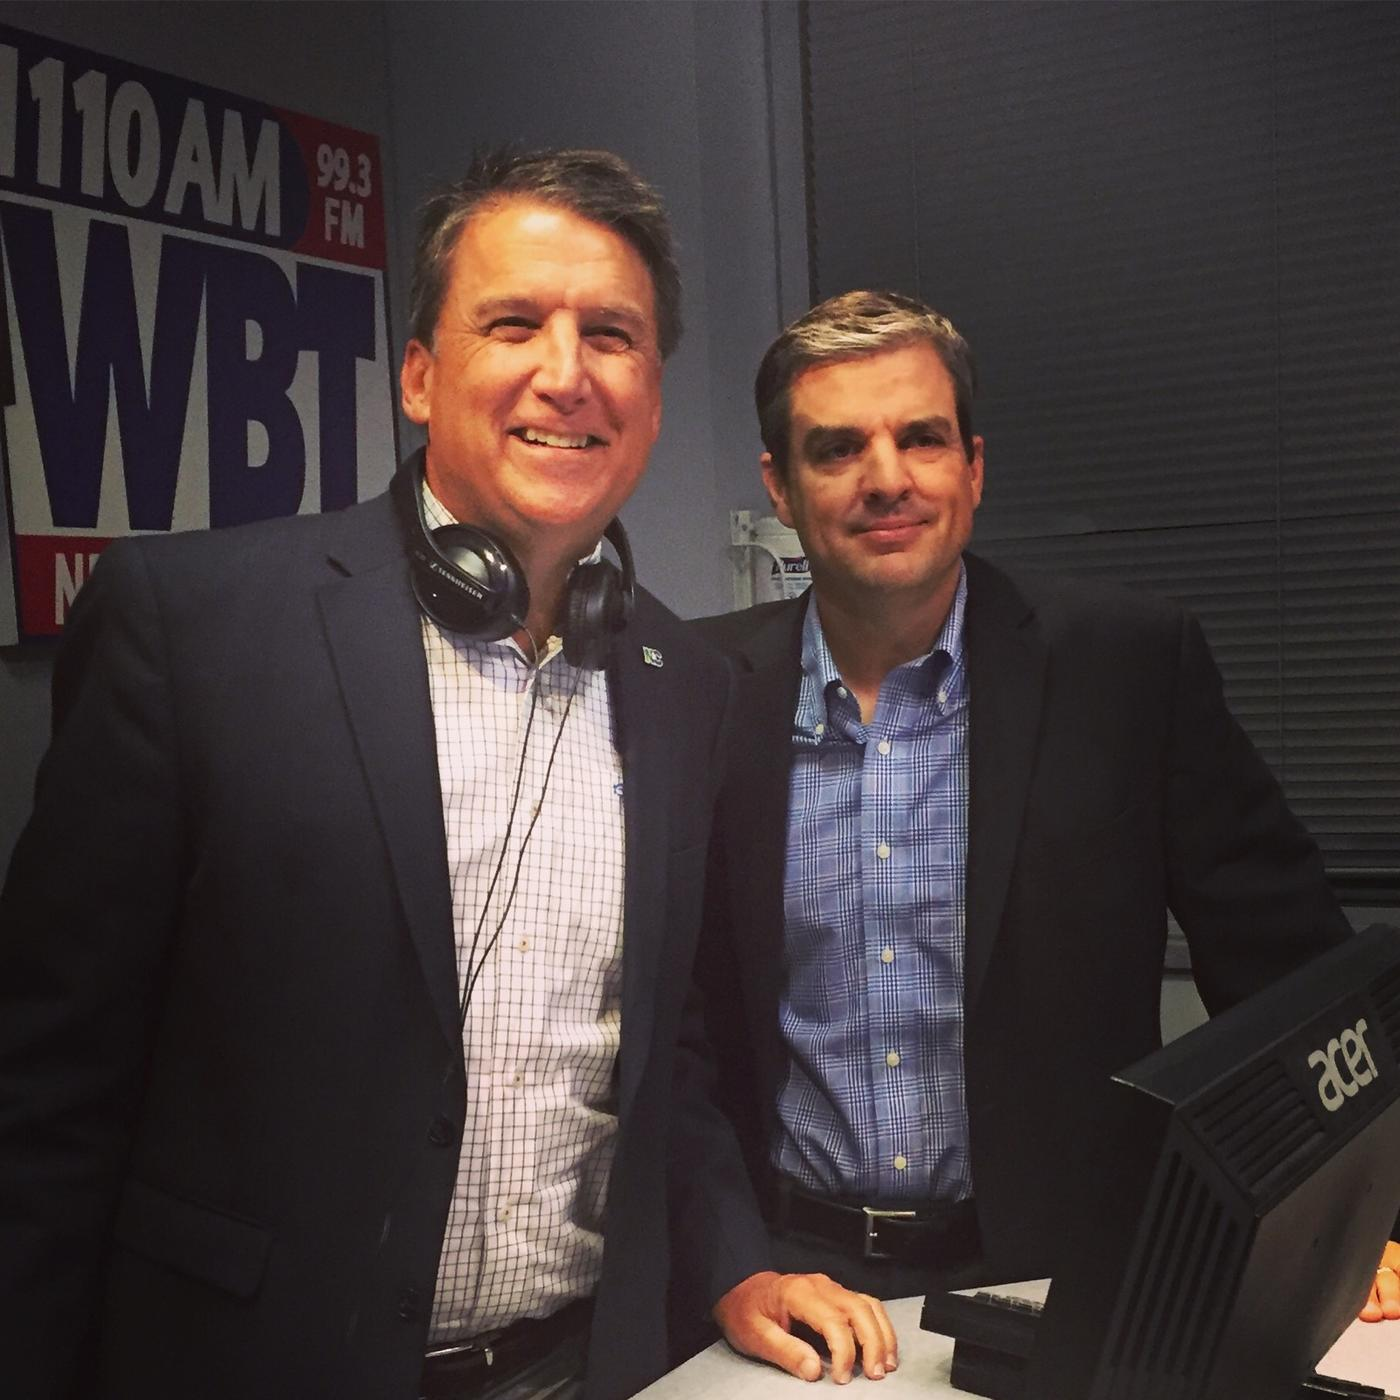 The Pat McCrory Show with Bo Thompson